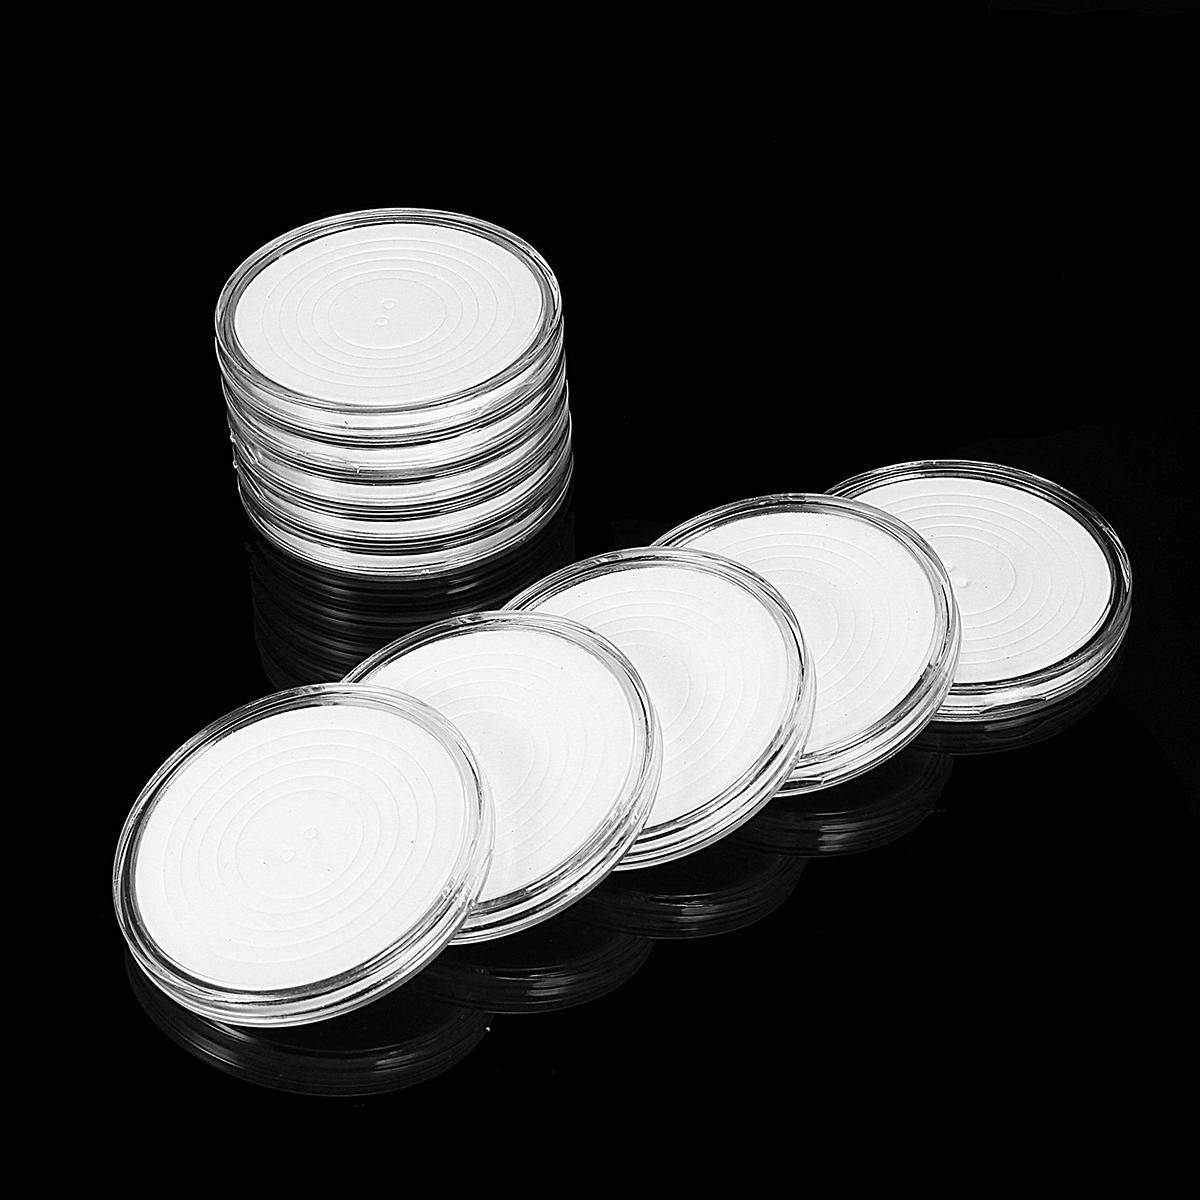 Small Round Box One Clear Ten Commemorative Coin Coin Collection Box Coin Holder